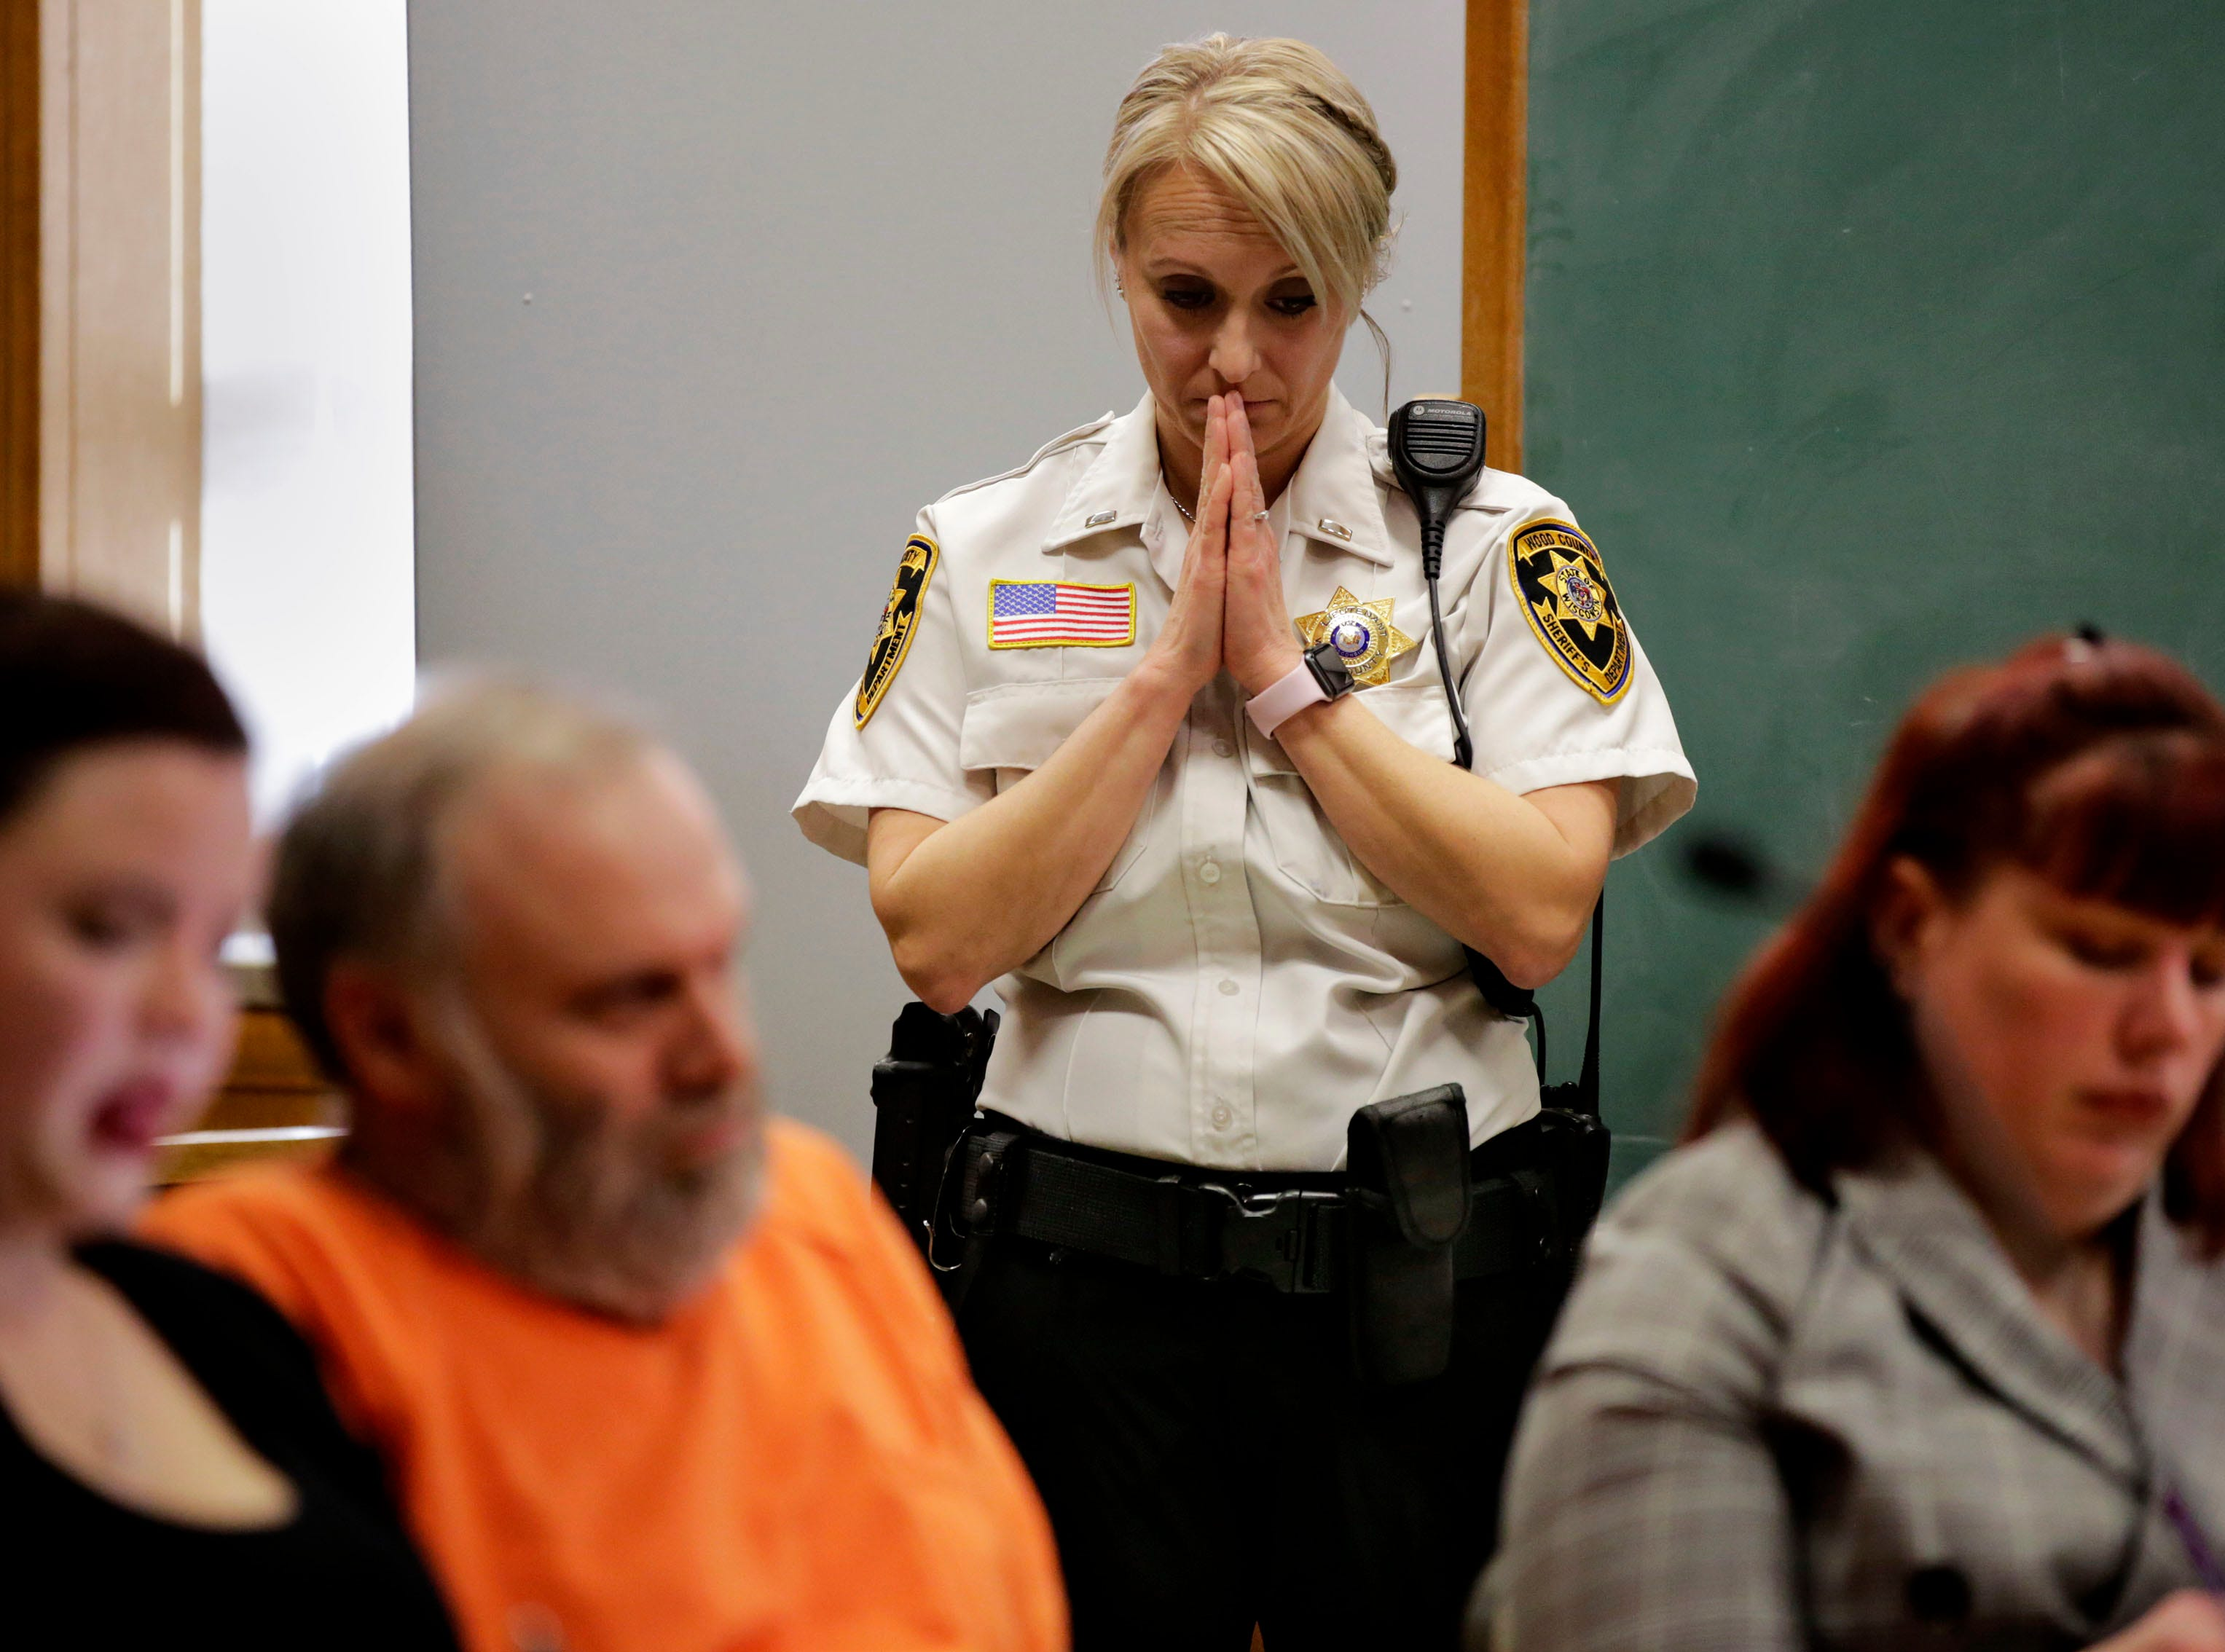 Wood County Jail Lieutenant Melissa Simcakowski reacts to testimony during a sentencing hearing on Tuesday, December 18, 2018, at the Wood County courthouse in Wisconsin Rapids, Wis. Defendant Gary Bohman was sentenced to life in prison with no possibility of parole for the murder of Christopher Race.Tork Mason/USA TODAY NETWORK-Wisconsin